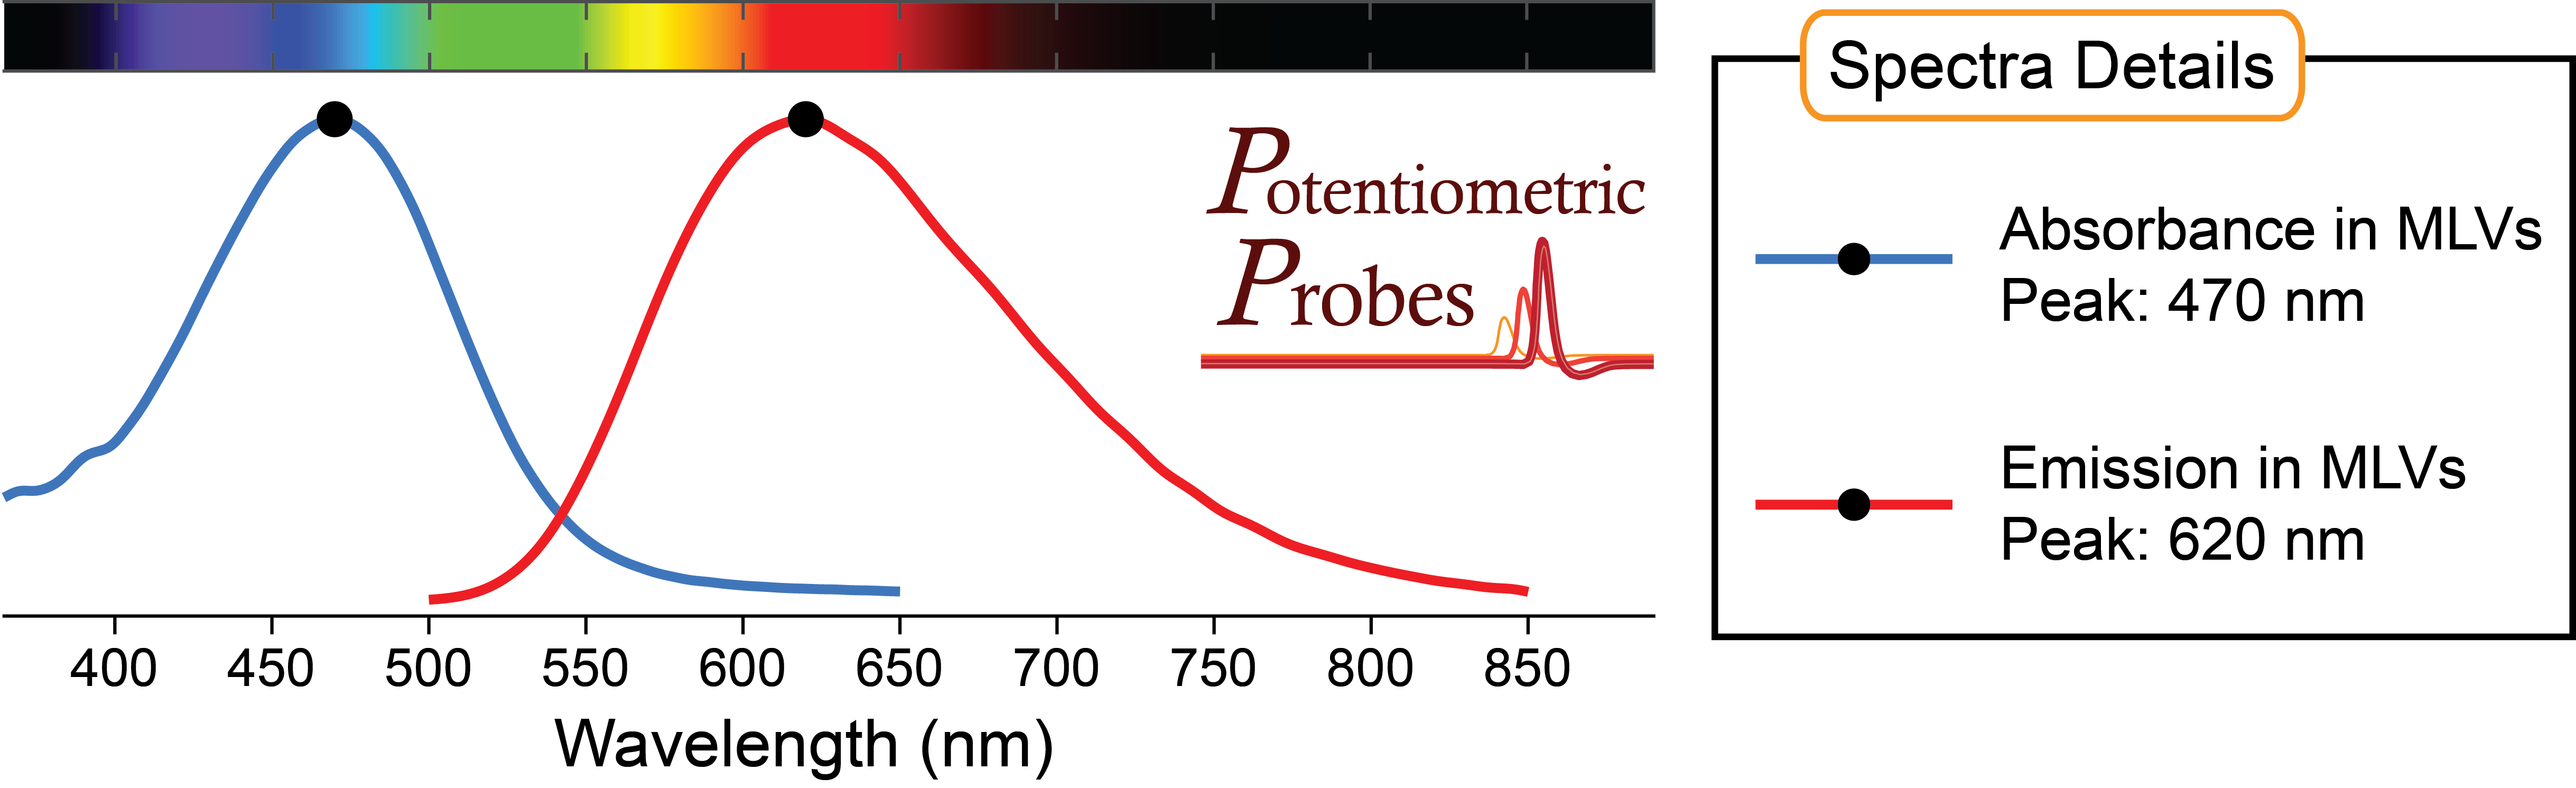 Spectra of voltage-sensitive dye Di-2-AN(F)EPPTEA from Potentiometric Probes